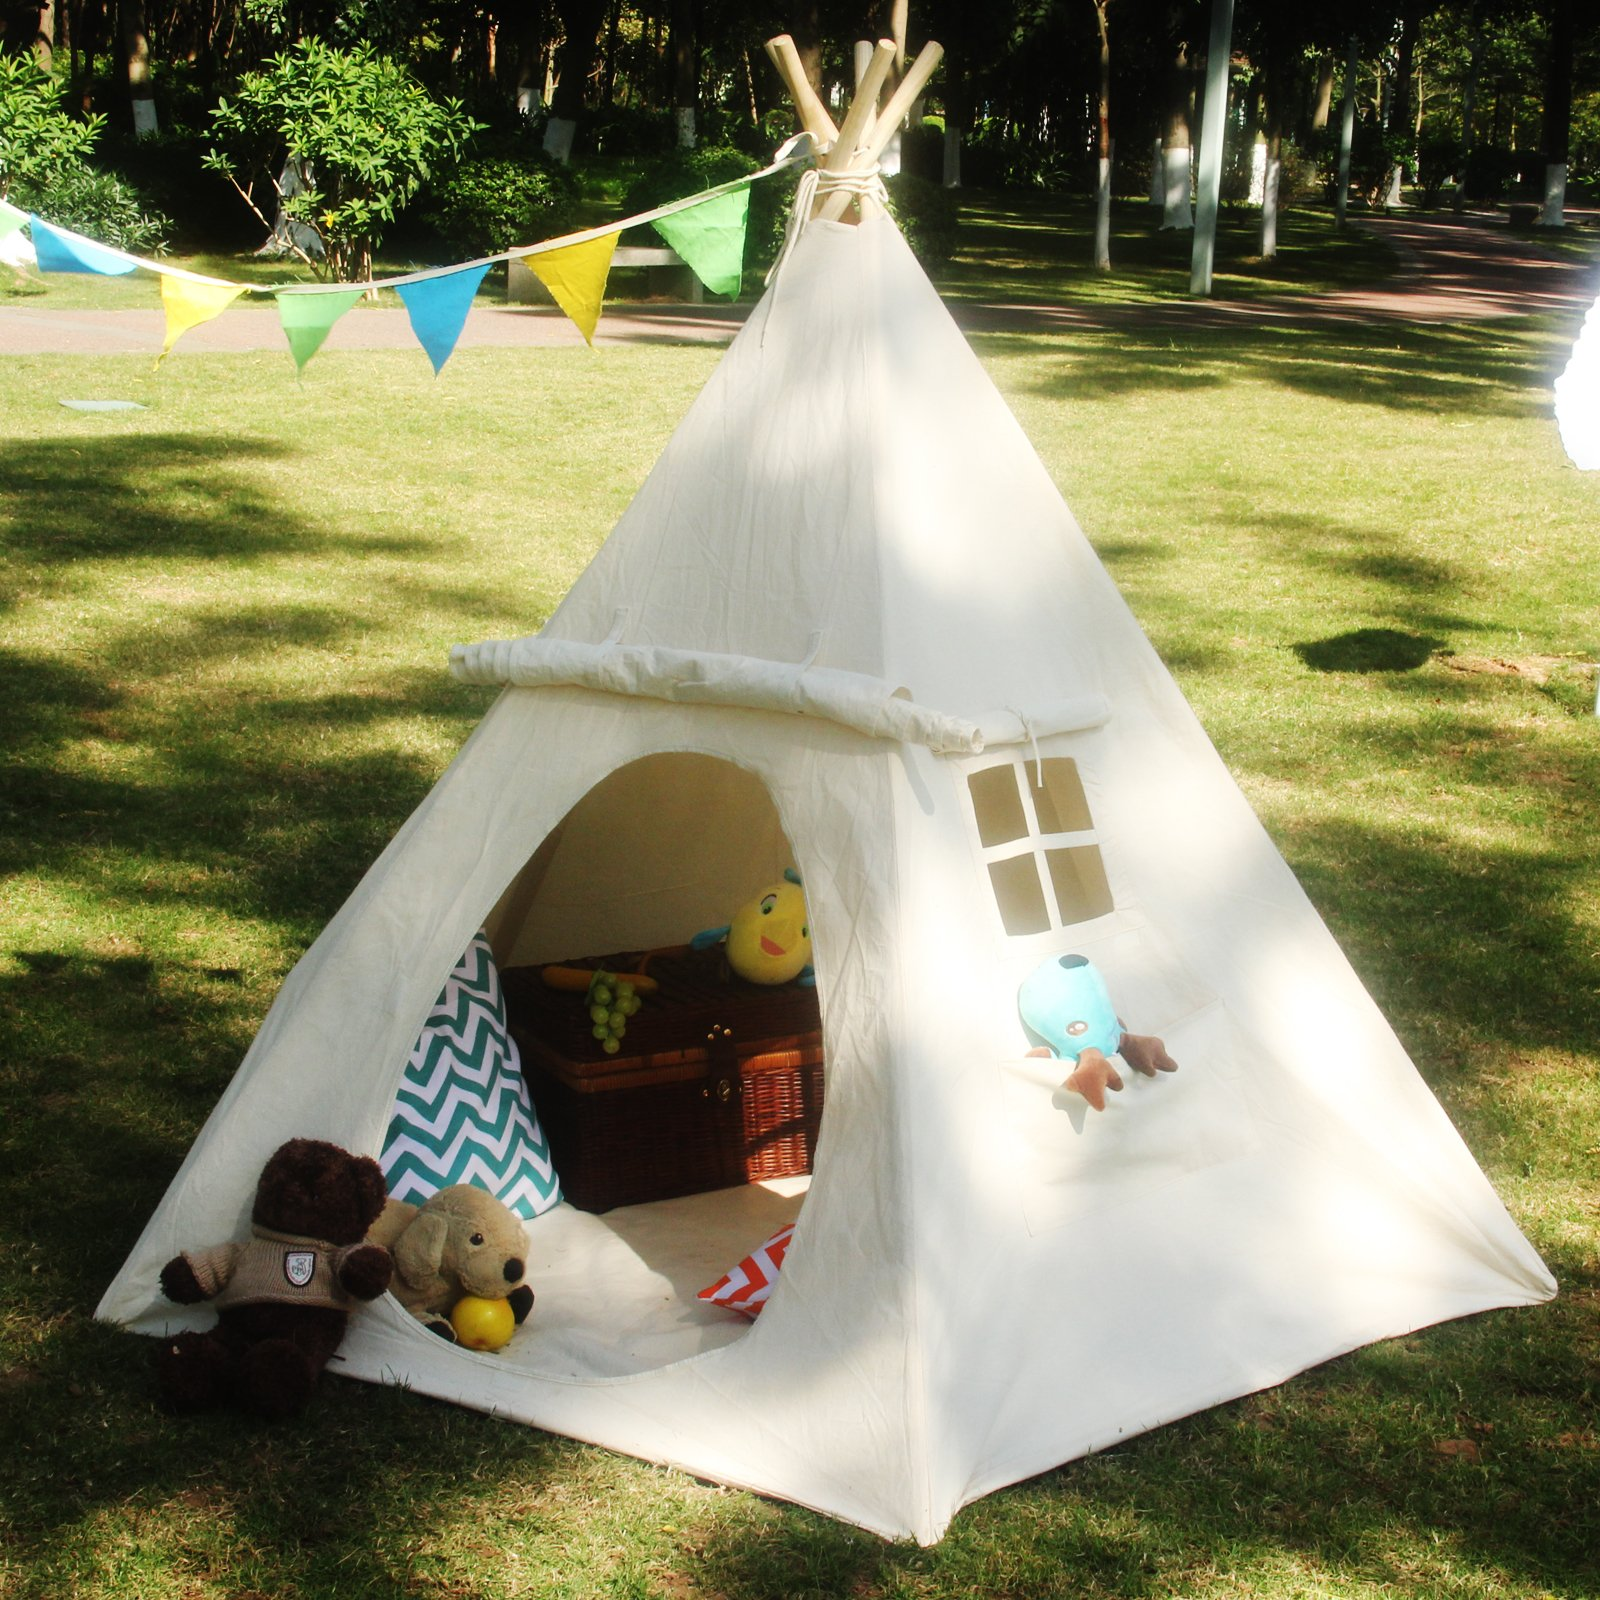 LAVIEVERT Children Playhouse Huge Indian Canvas Teepee Kids Play House with Two Windows - Comes with A Canvas Carry Bag by LAVIEVERT